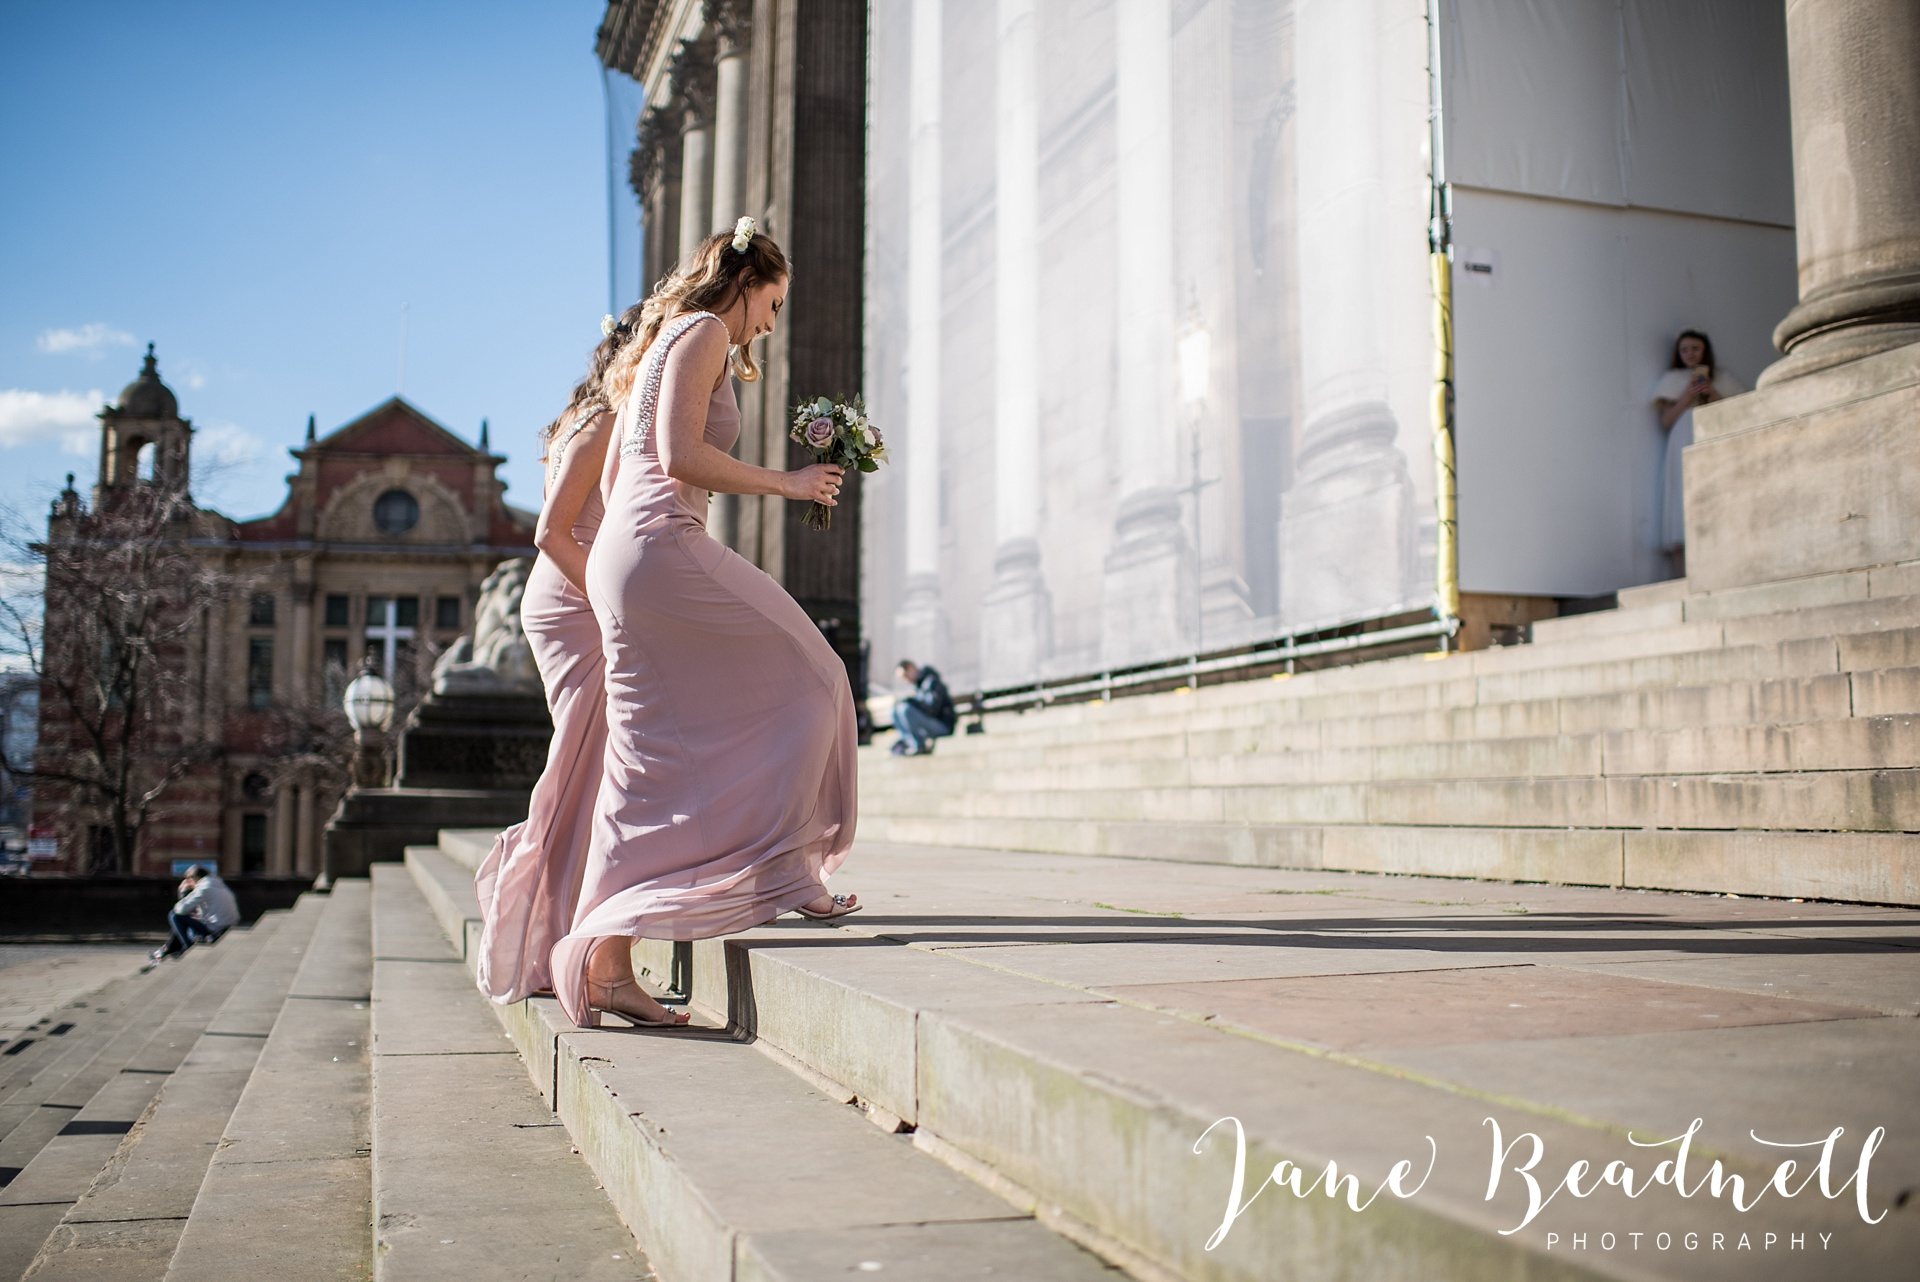 Wedding photography Cross Keys Leeds Wedding Jane Beadnell Photography_0017